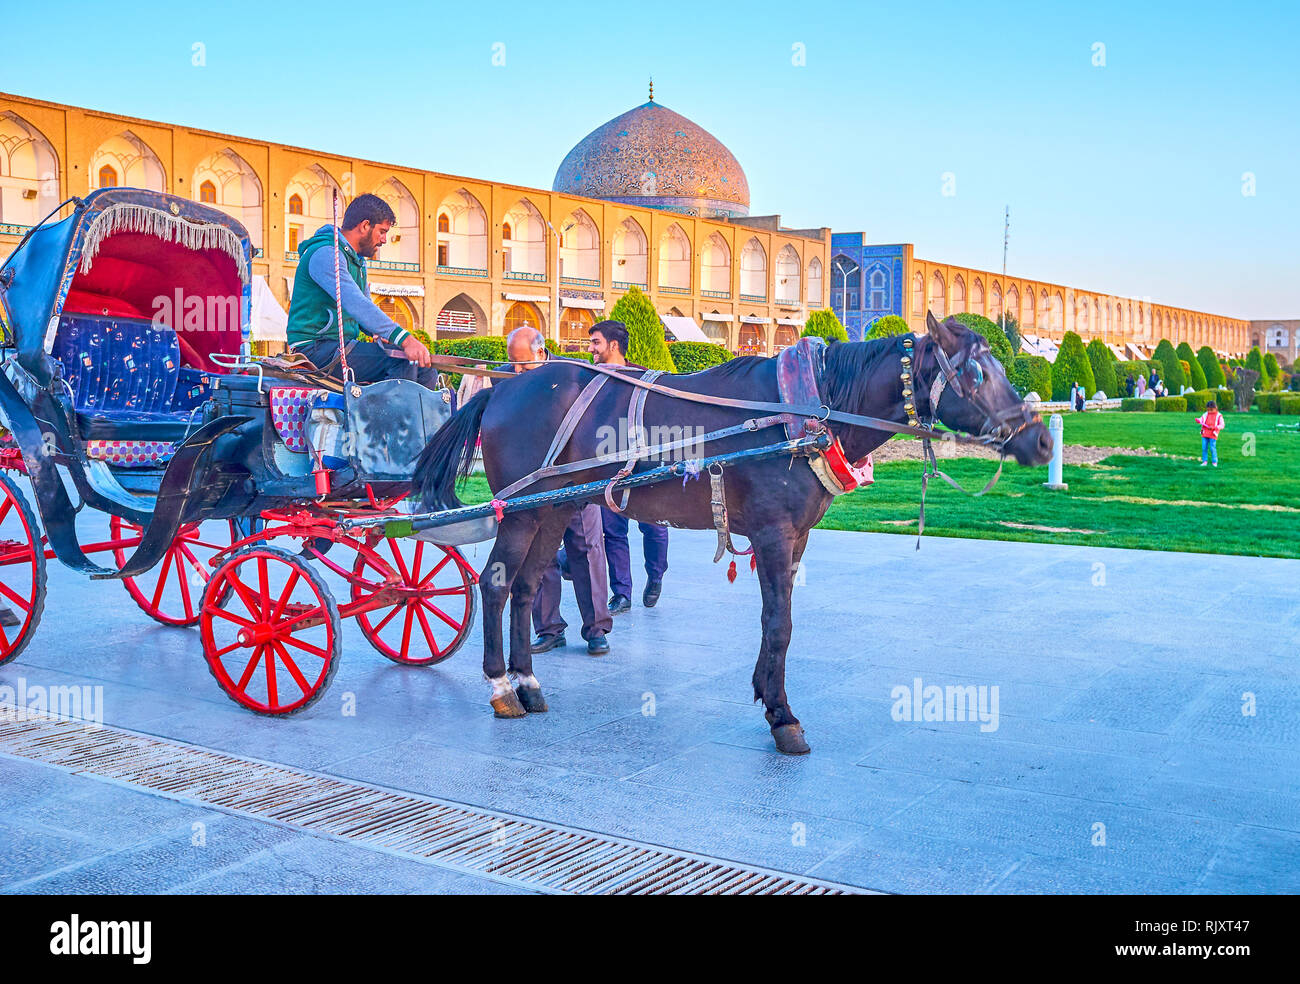 ISFAHAN, IRAN - OCTOBER 19, 2017: Nashq-e Jahad Square is the main tourist destination in the city, that offer variety of interesting attractions, suc Stock Photo